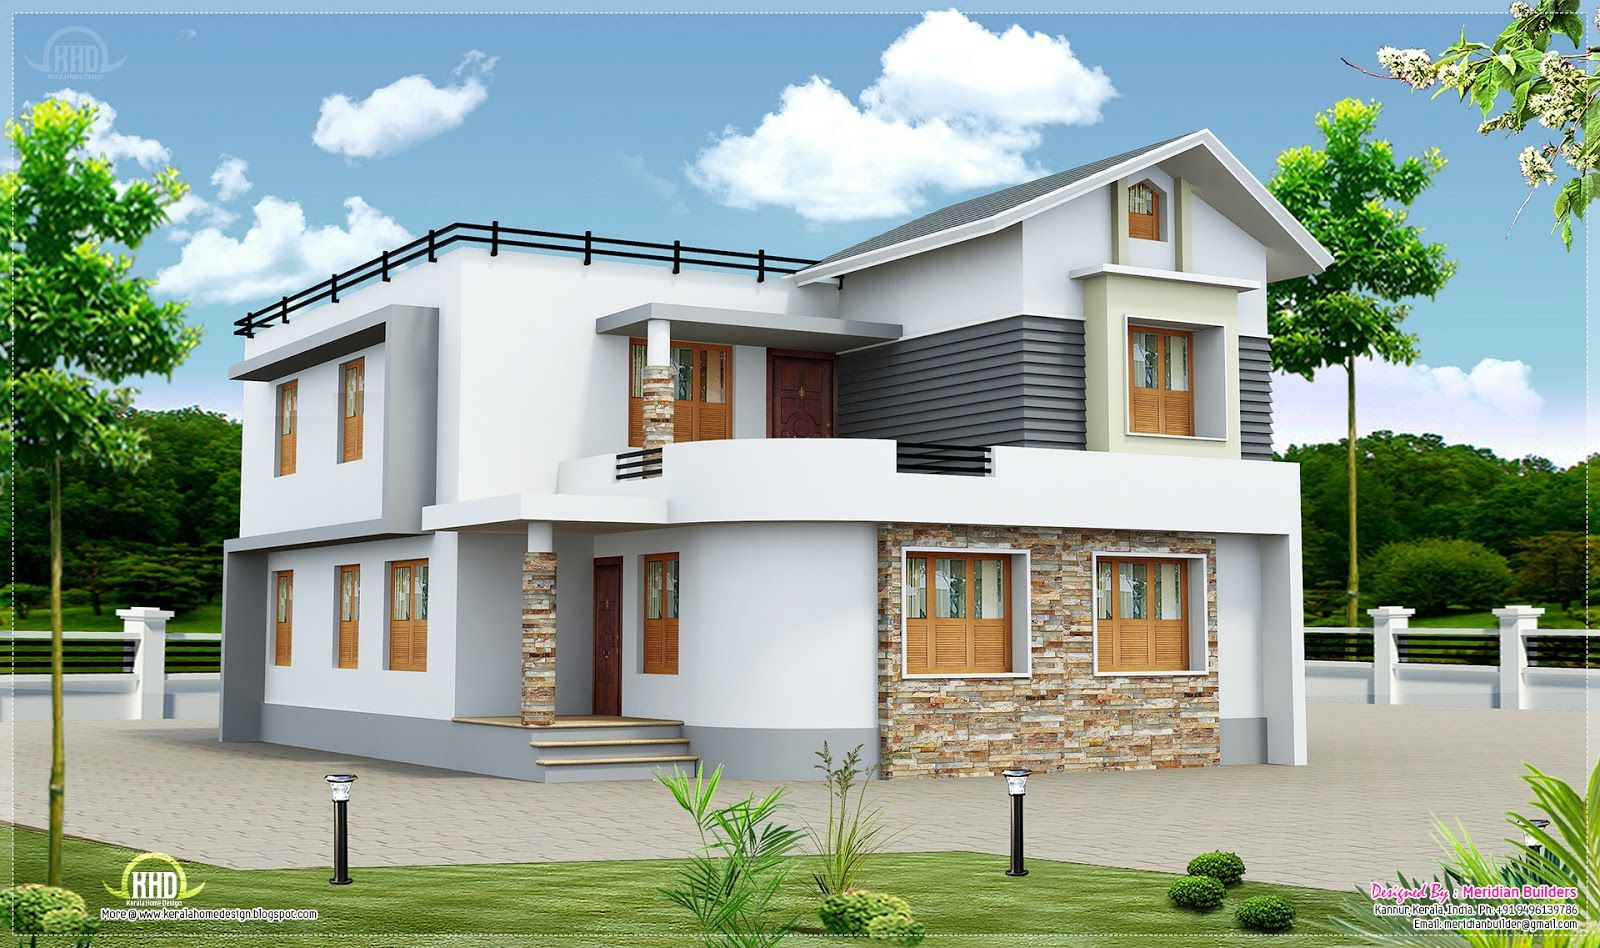 Exterior Floor House Design Ideas With Two Floors And White Wall